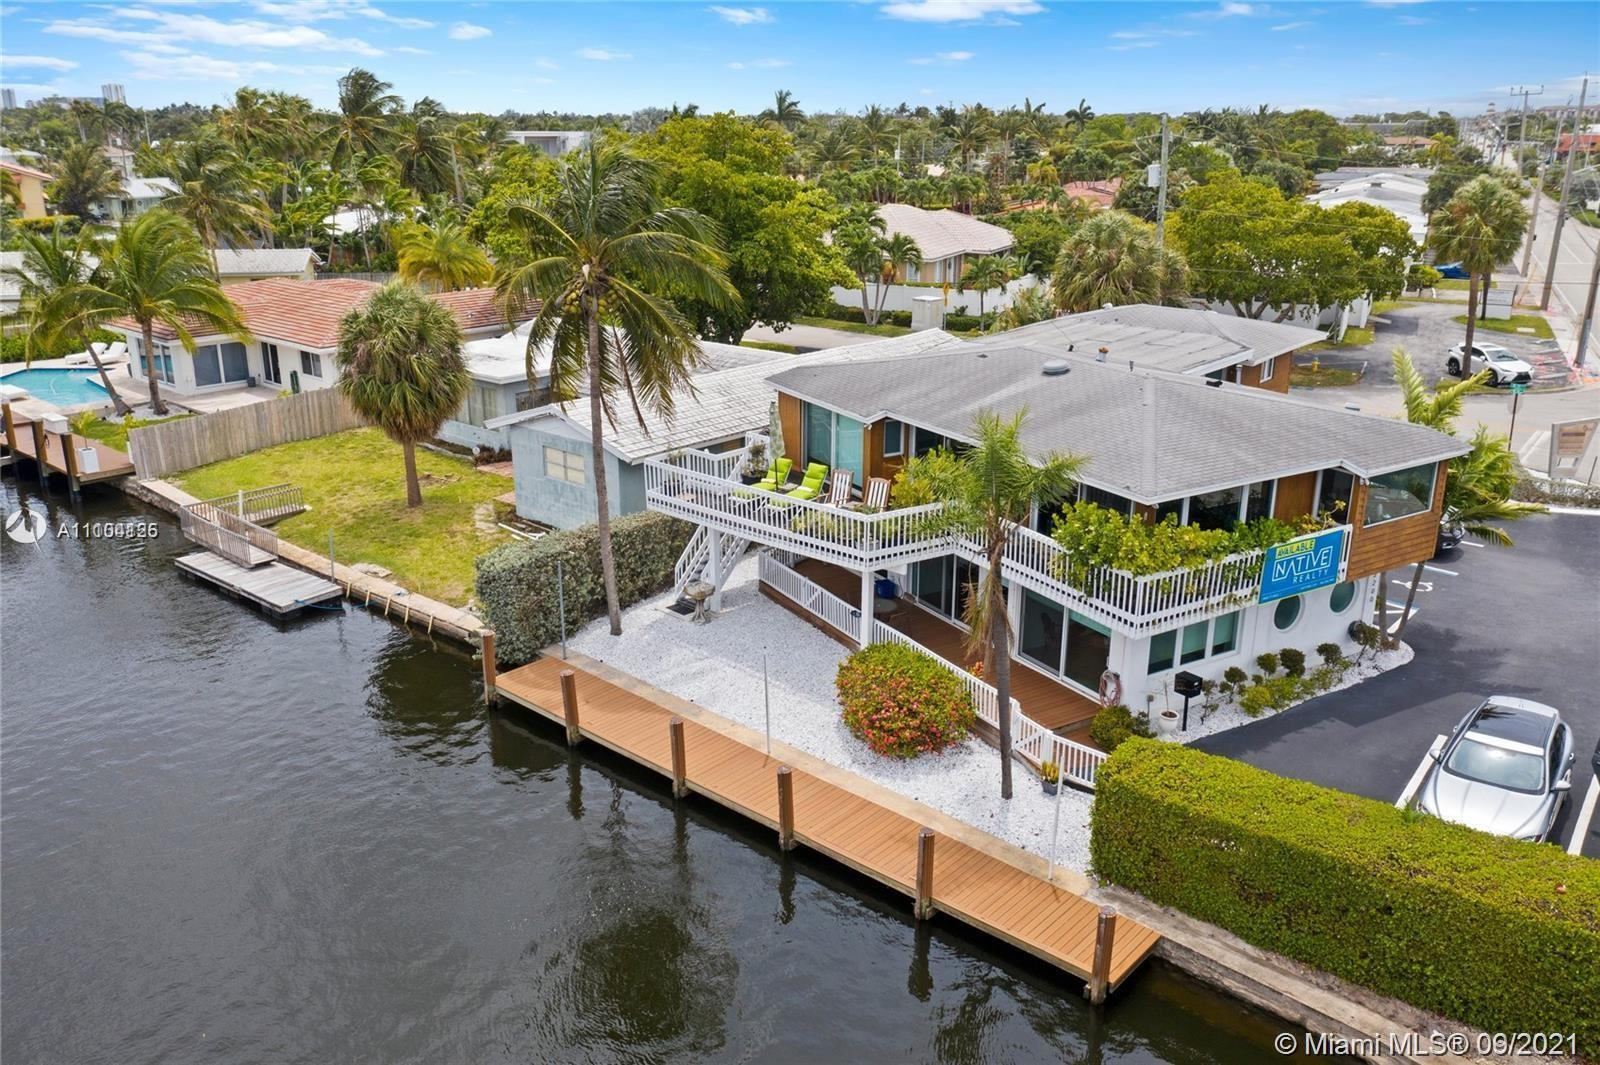 Native Realty is proud to present this turnkey WATERFRONT LIVE/WORK HOME one block from Federal Hwy.